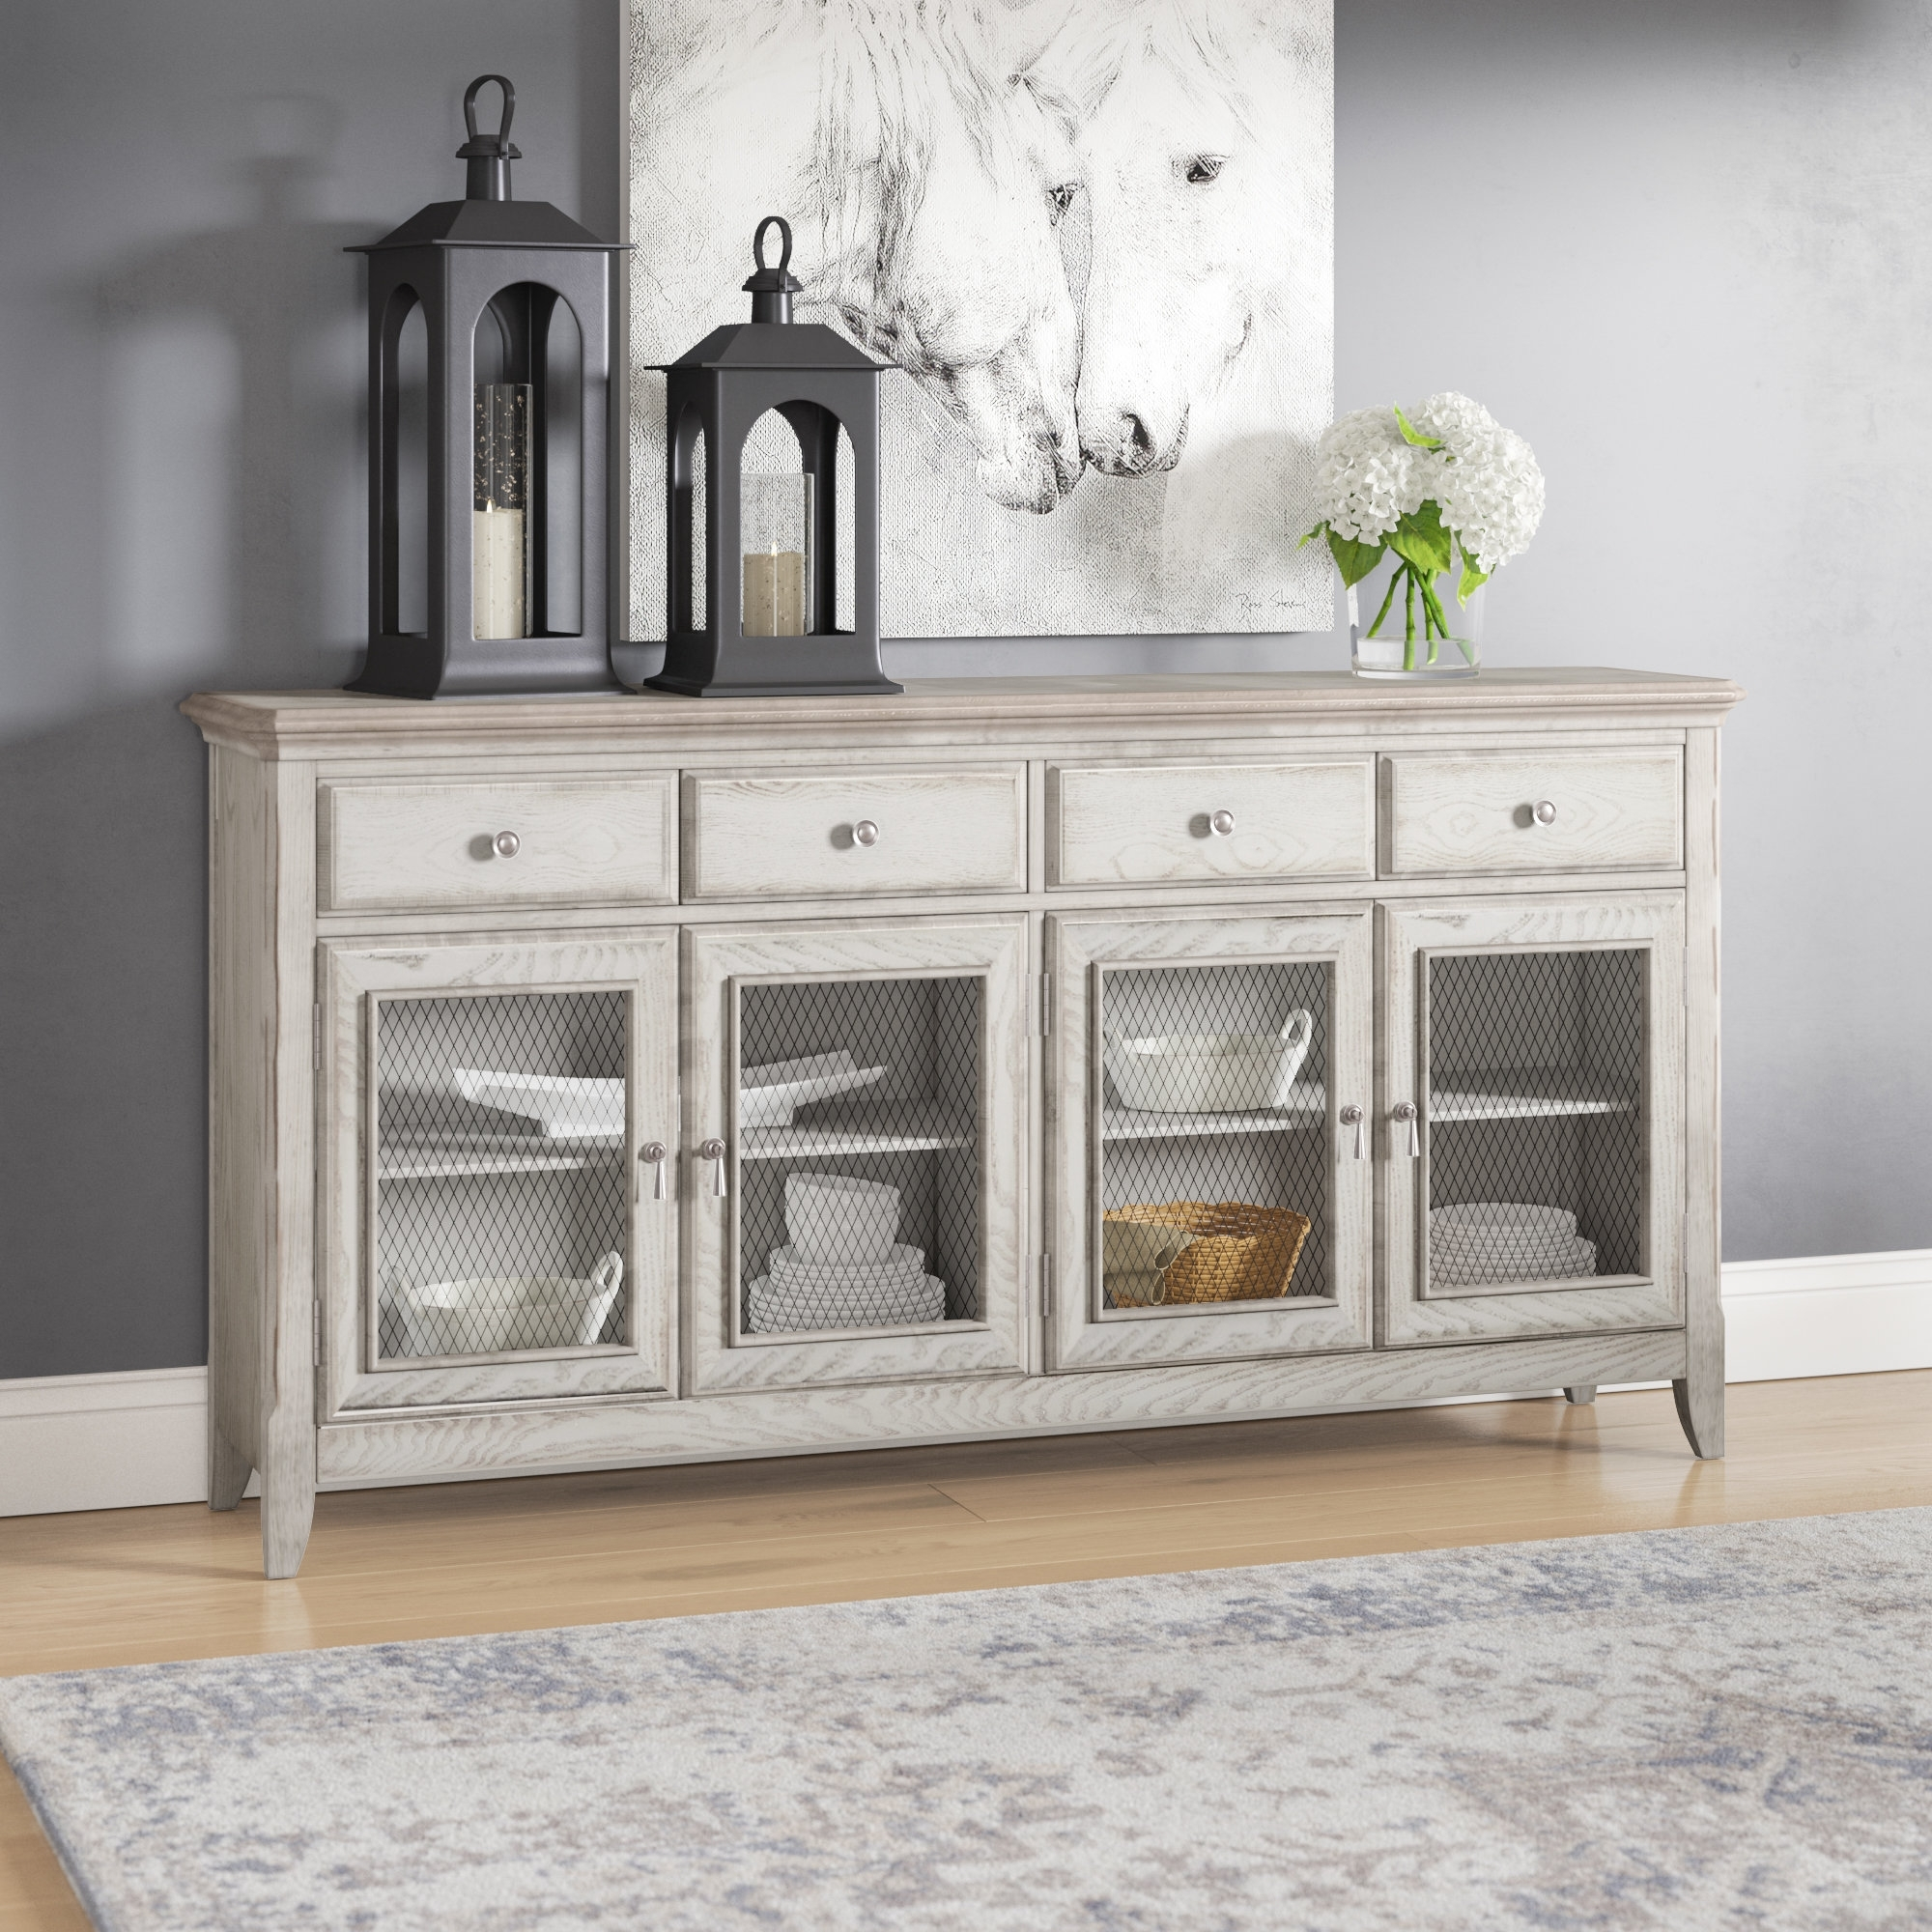 Laurel Foundry Modern Farmhouse Guerrera 4 Door Credenza With Wire throughout 4-Door/4-Drawer Metal Inserts Sideboards (Image 17 of 30)